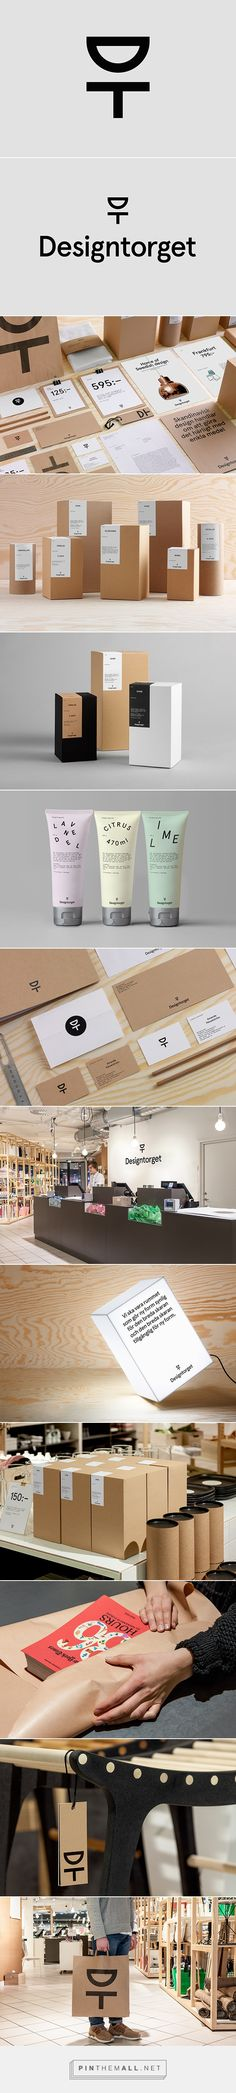 Identity / Designtorget on Behance by Kurppa Hosk / kraft